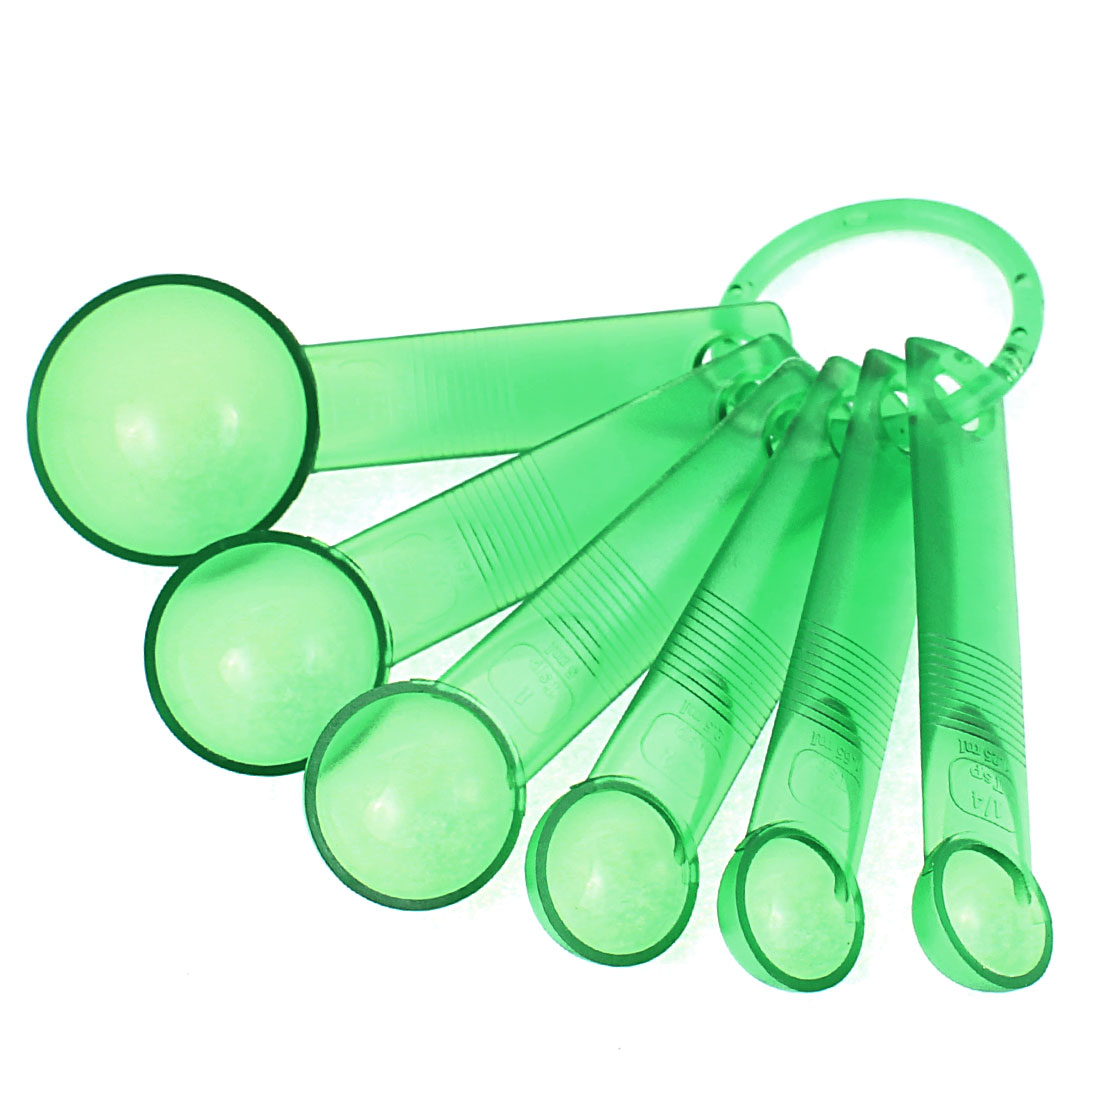 Kitchen Cooking Plastic Measuring Spoon Cup Baking Utensil Tools Set Green